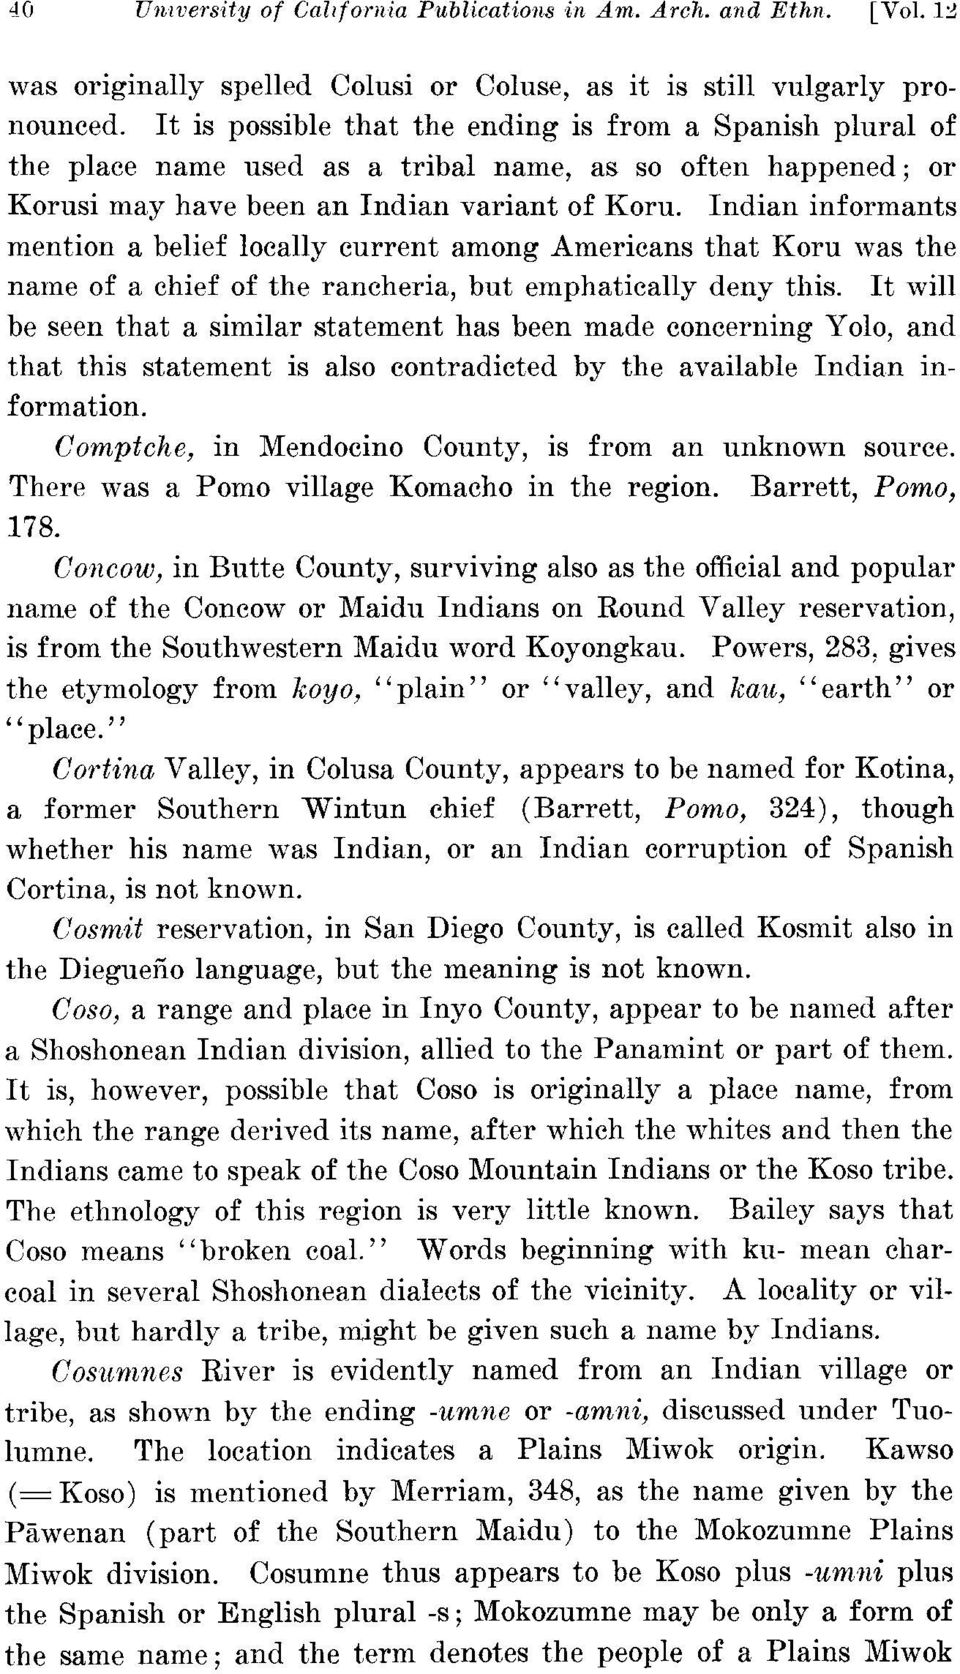 Indian informants mention a belief locally current among Americans that Koru was the name of a chief of the rancheria, but emphatically deny this.